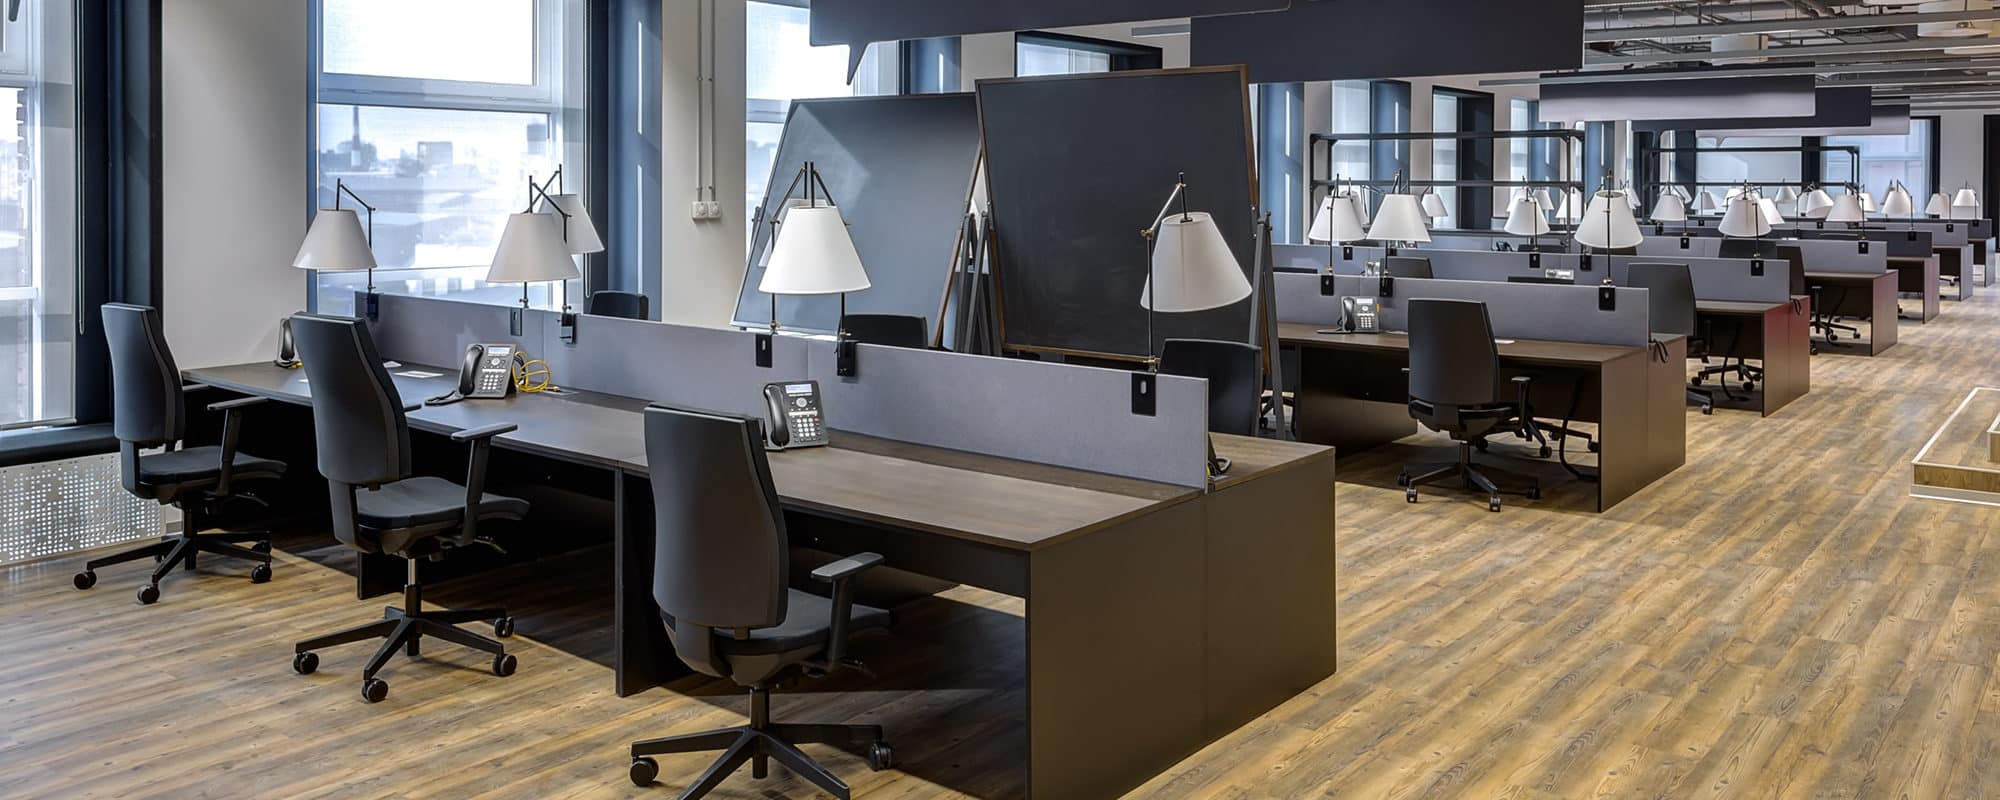 5 Reasons To Consider Renting Versus Buying Office Furniture